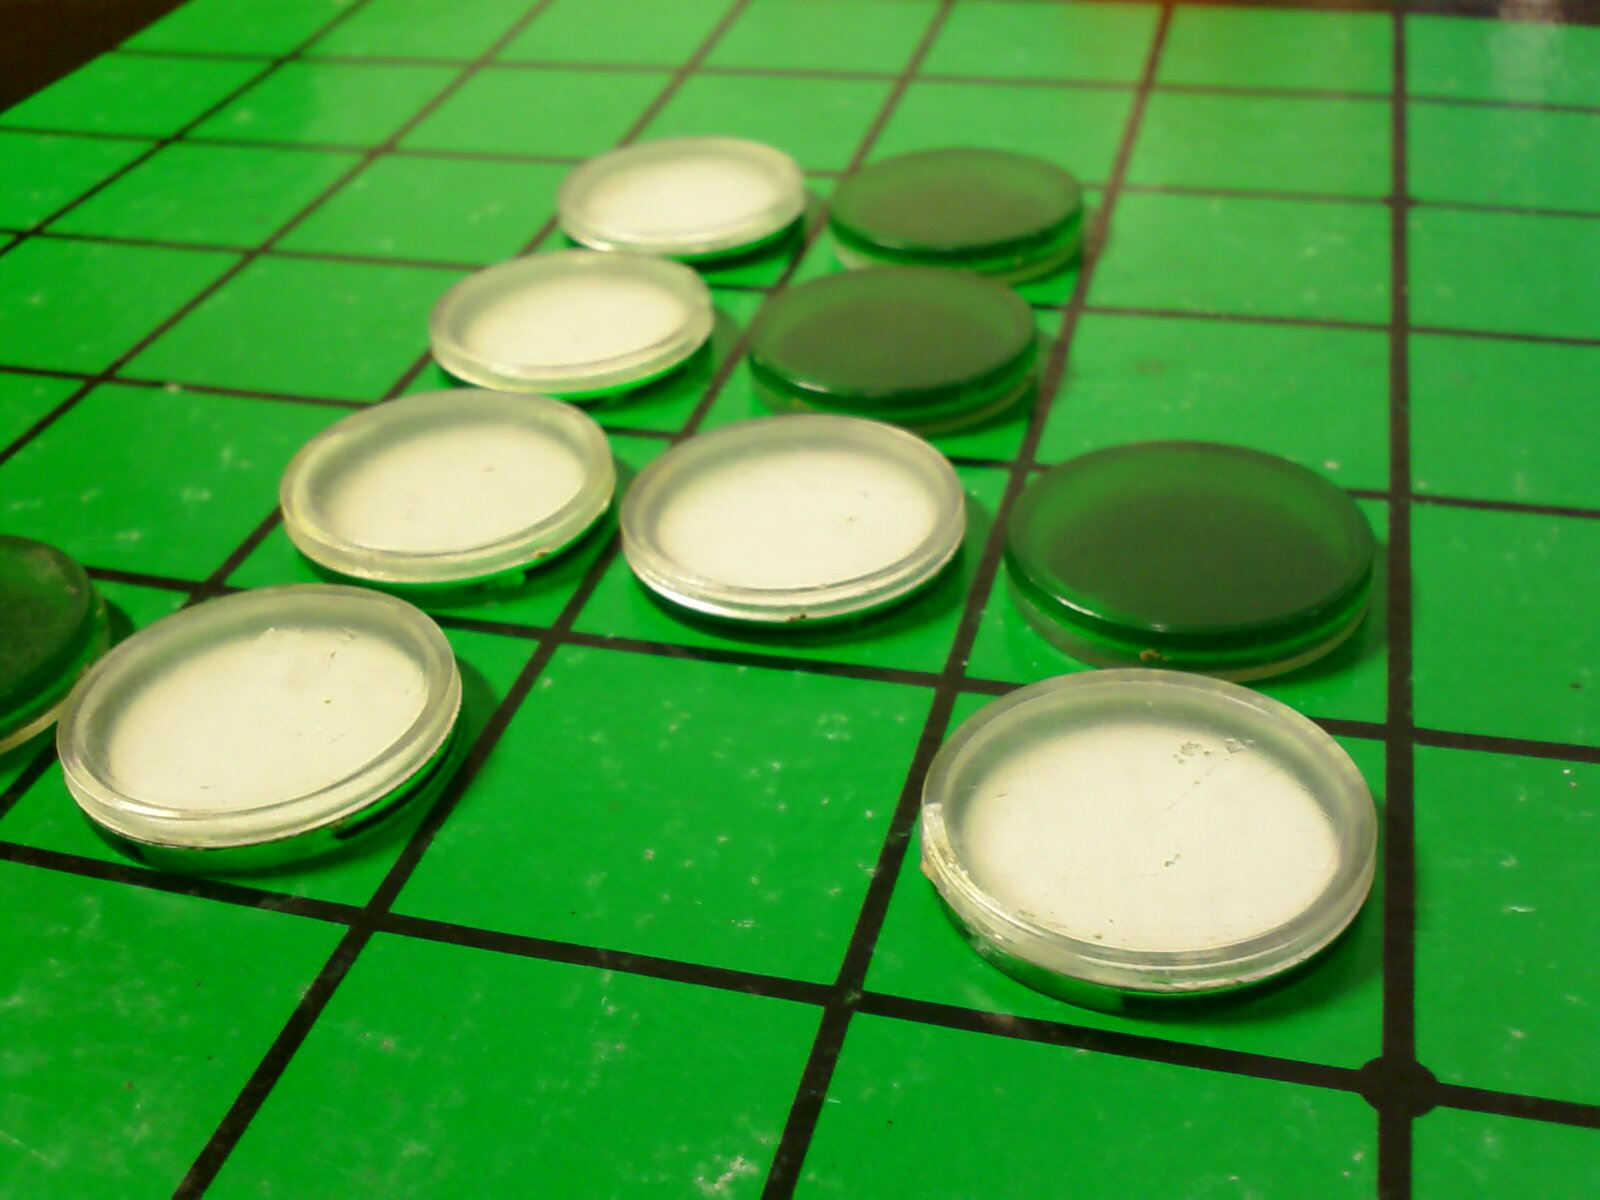 """"""" Othello (Reversi) board """" BY  Paul_012  IS LICENSED UNDER  CC BY-SA 3.0 ."""